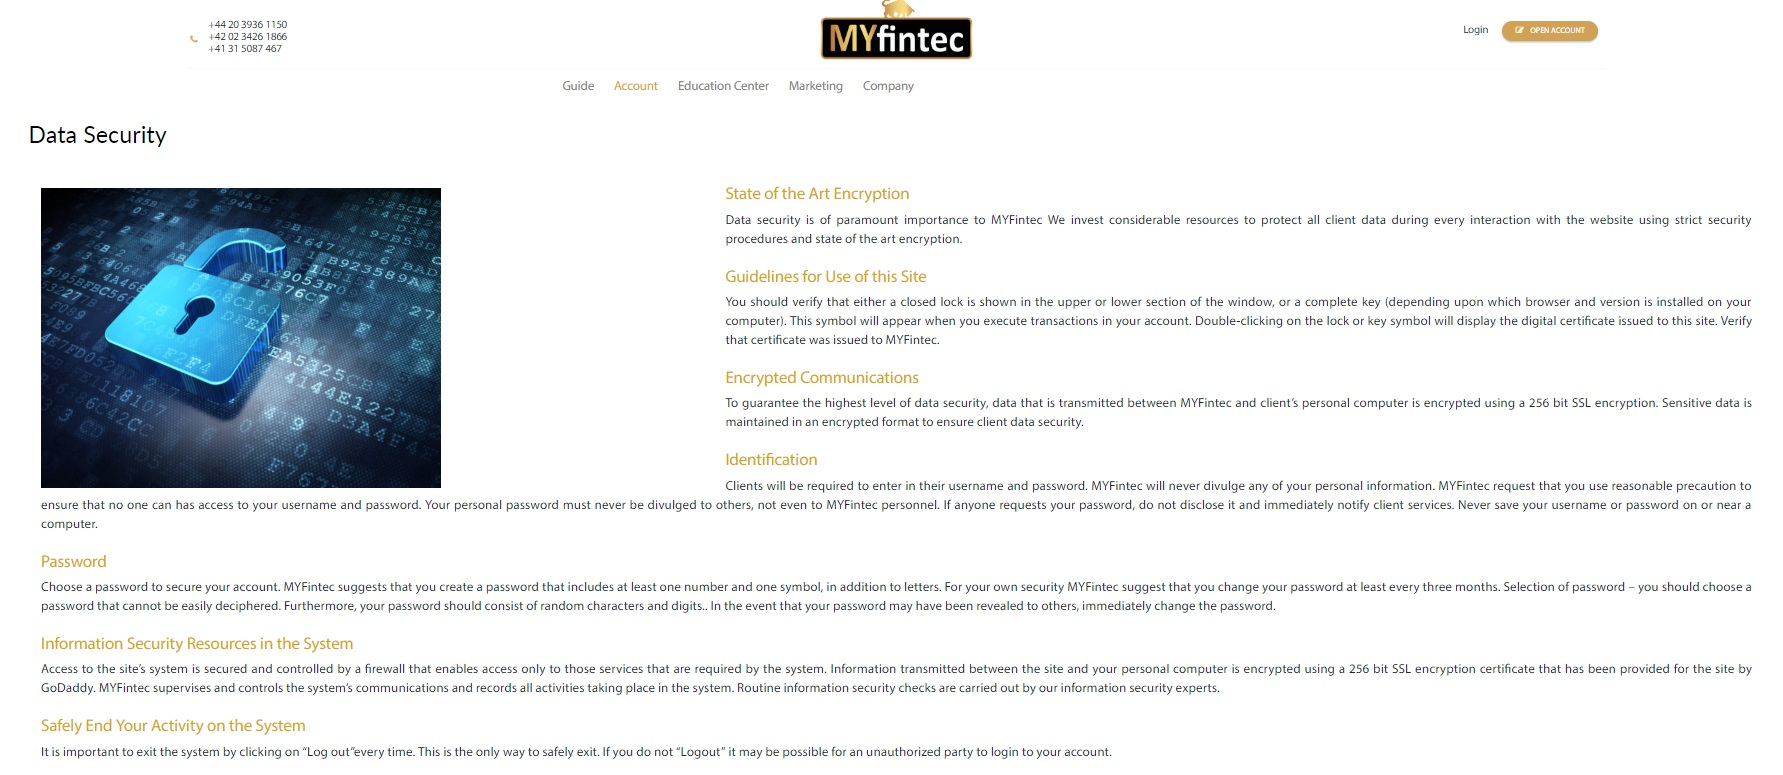 MYfintec Data Security